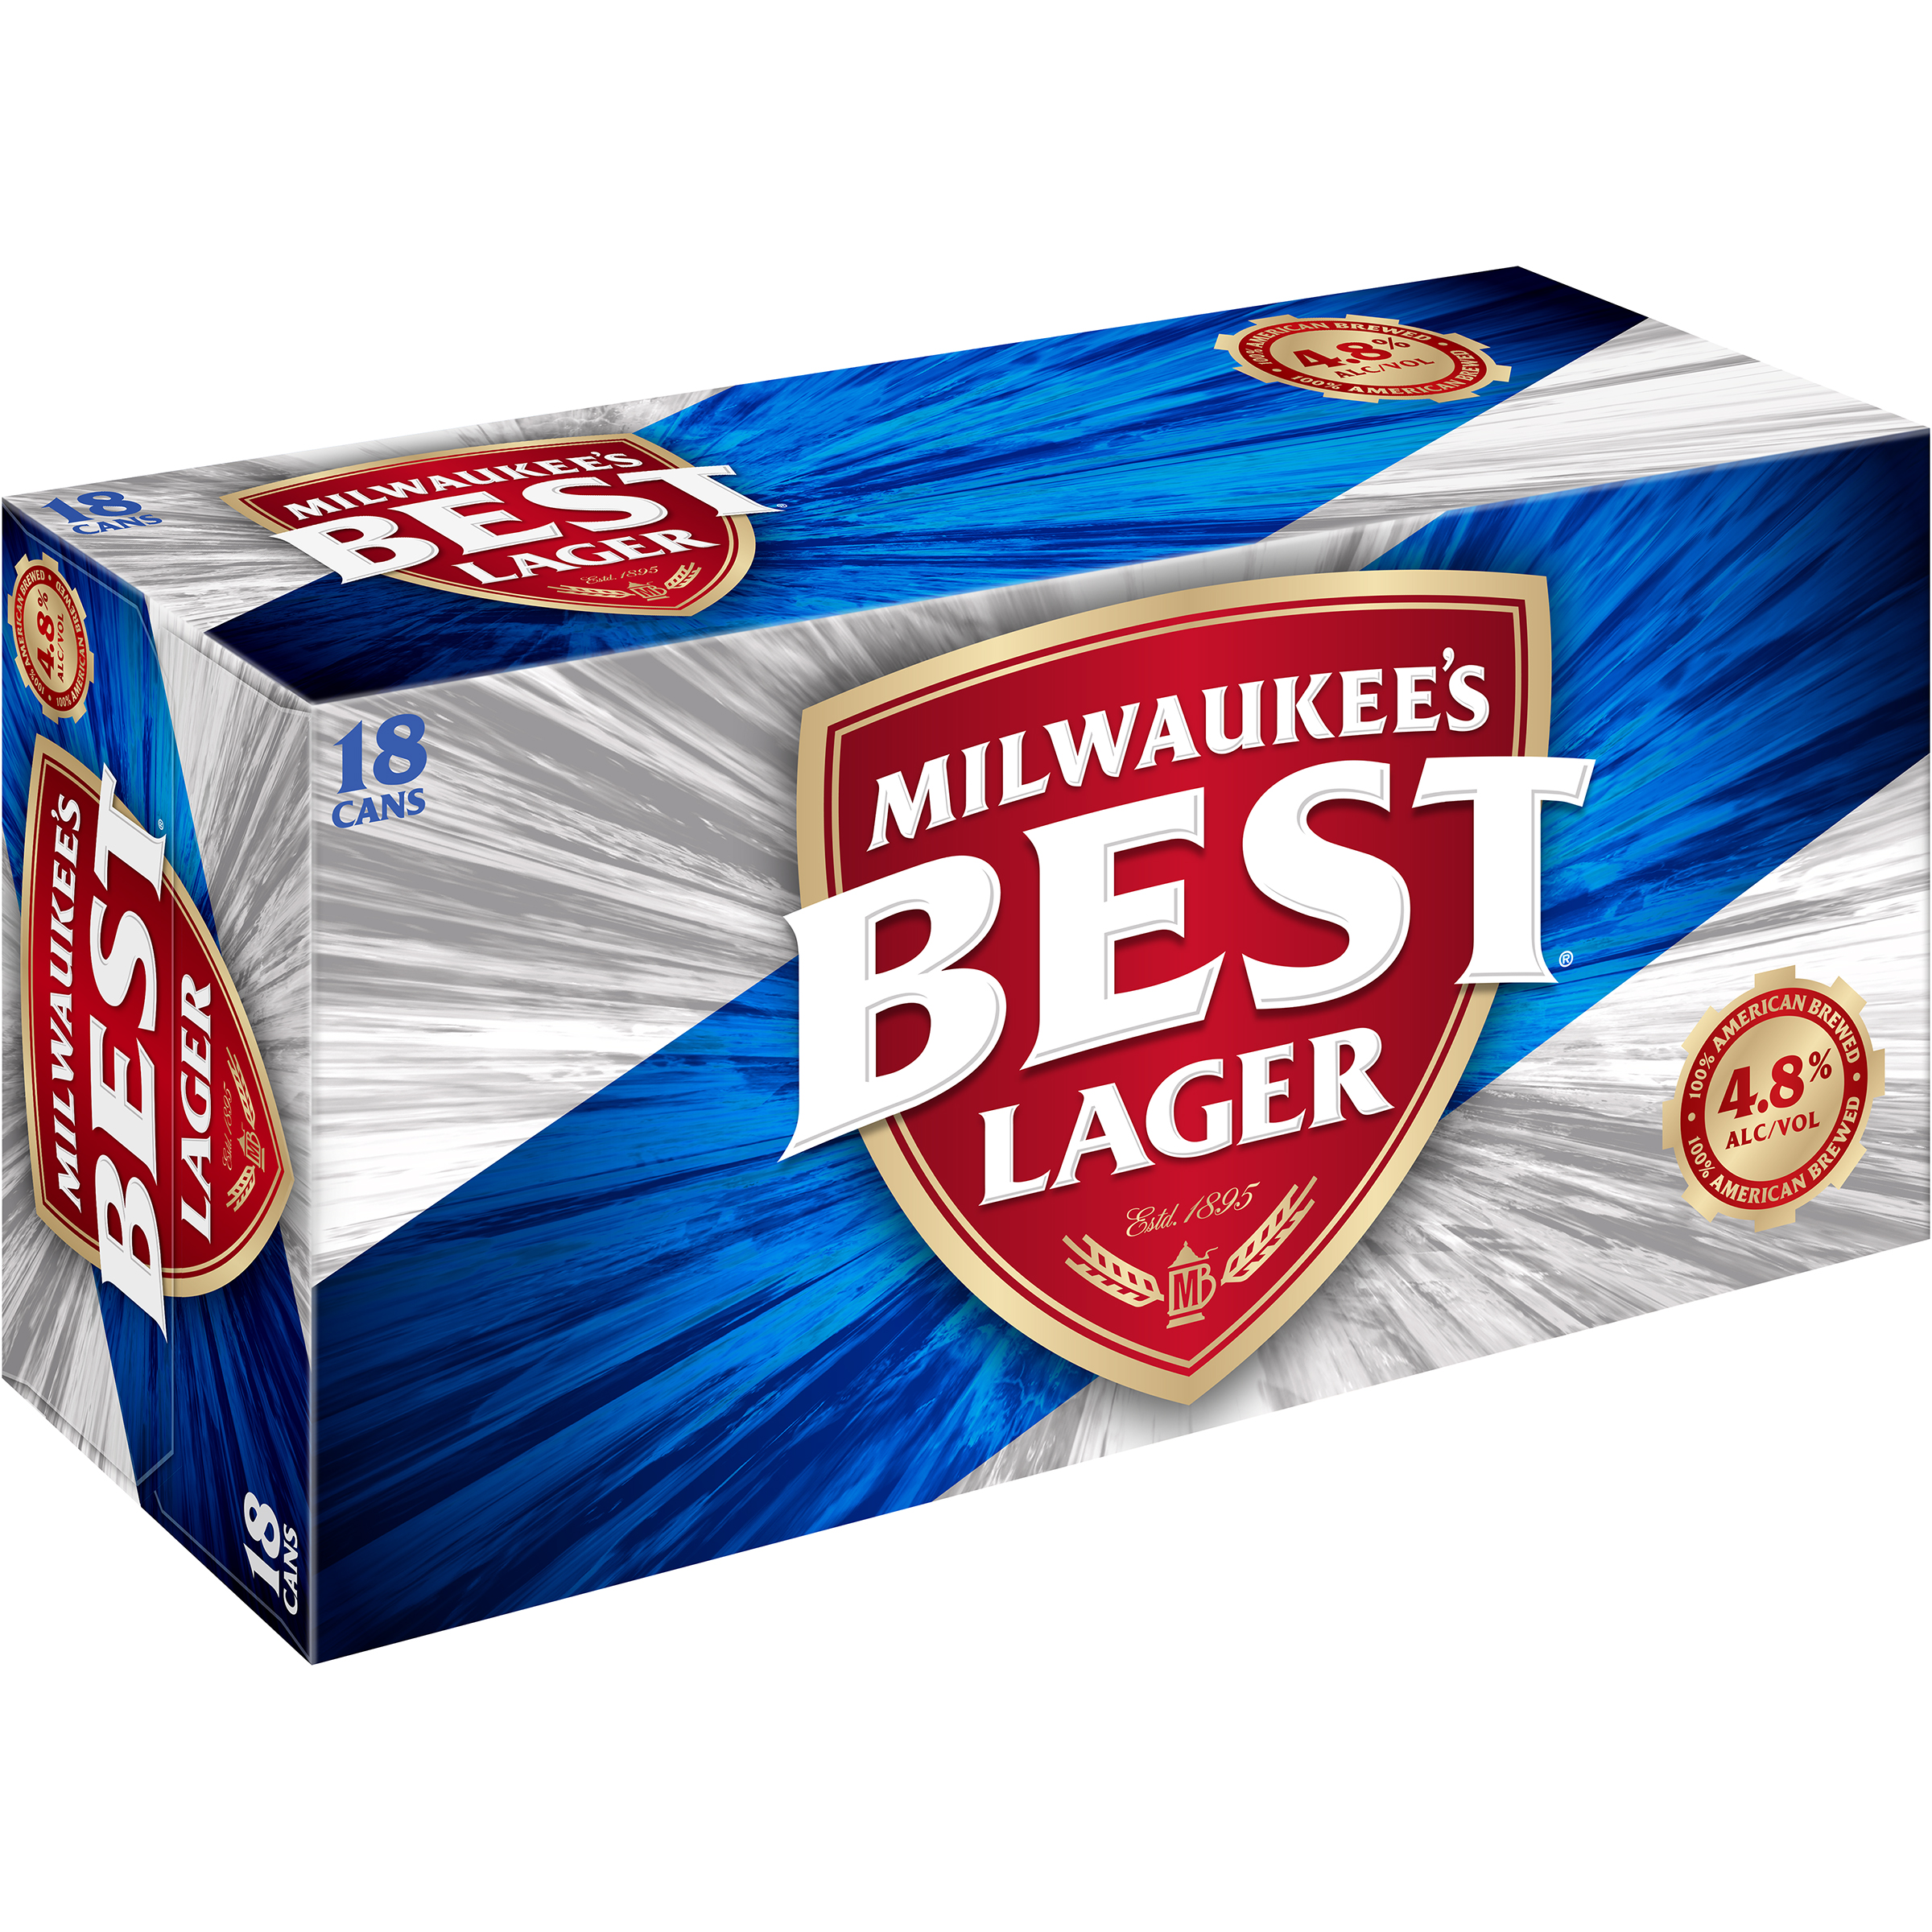 Milwaukee's Best Premium Lager Beer, 18 Pack, 12 fl. oz. Cans, 4.8% ABV